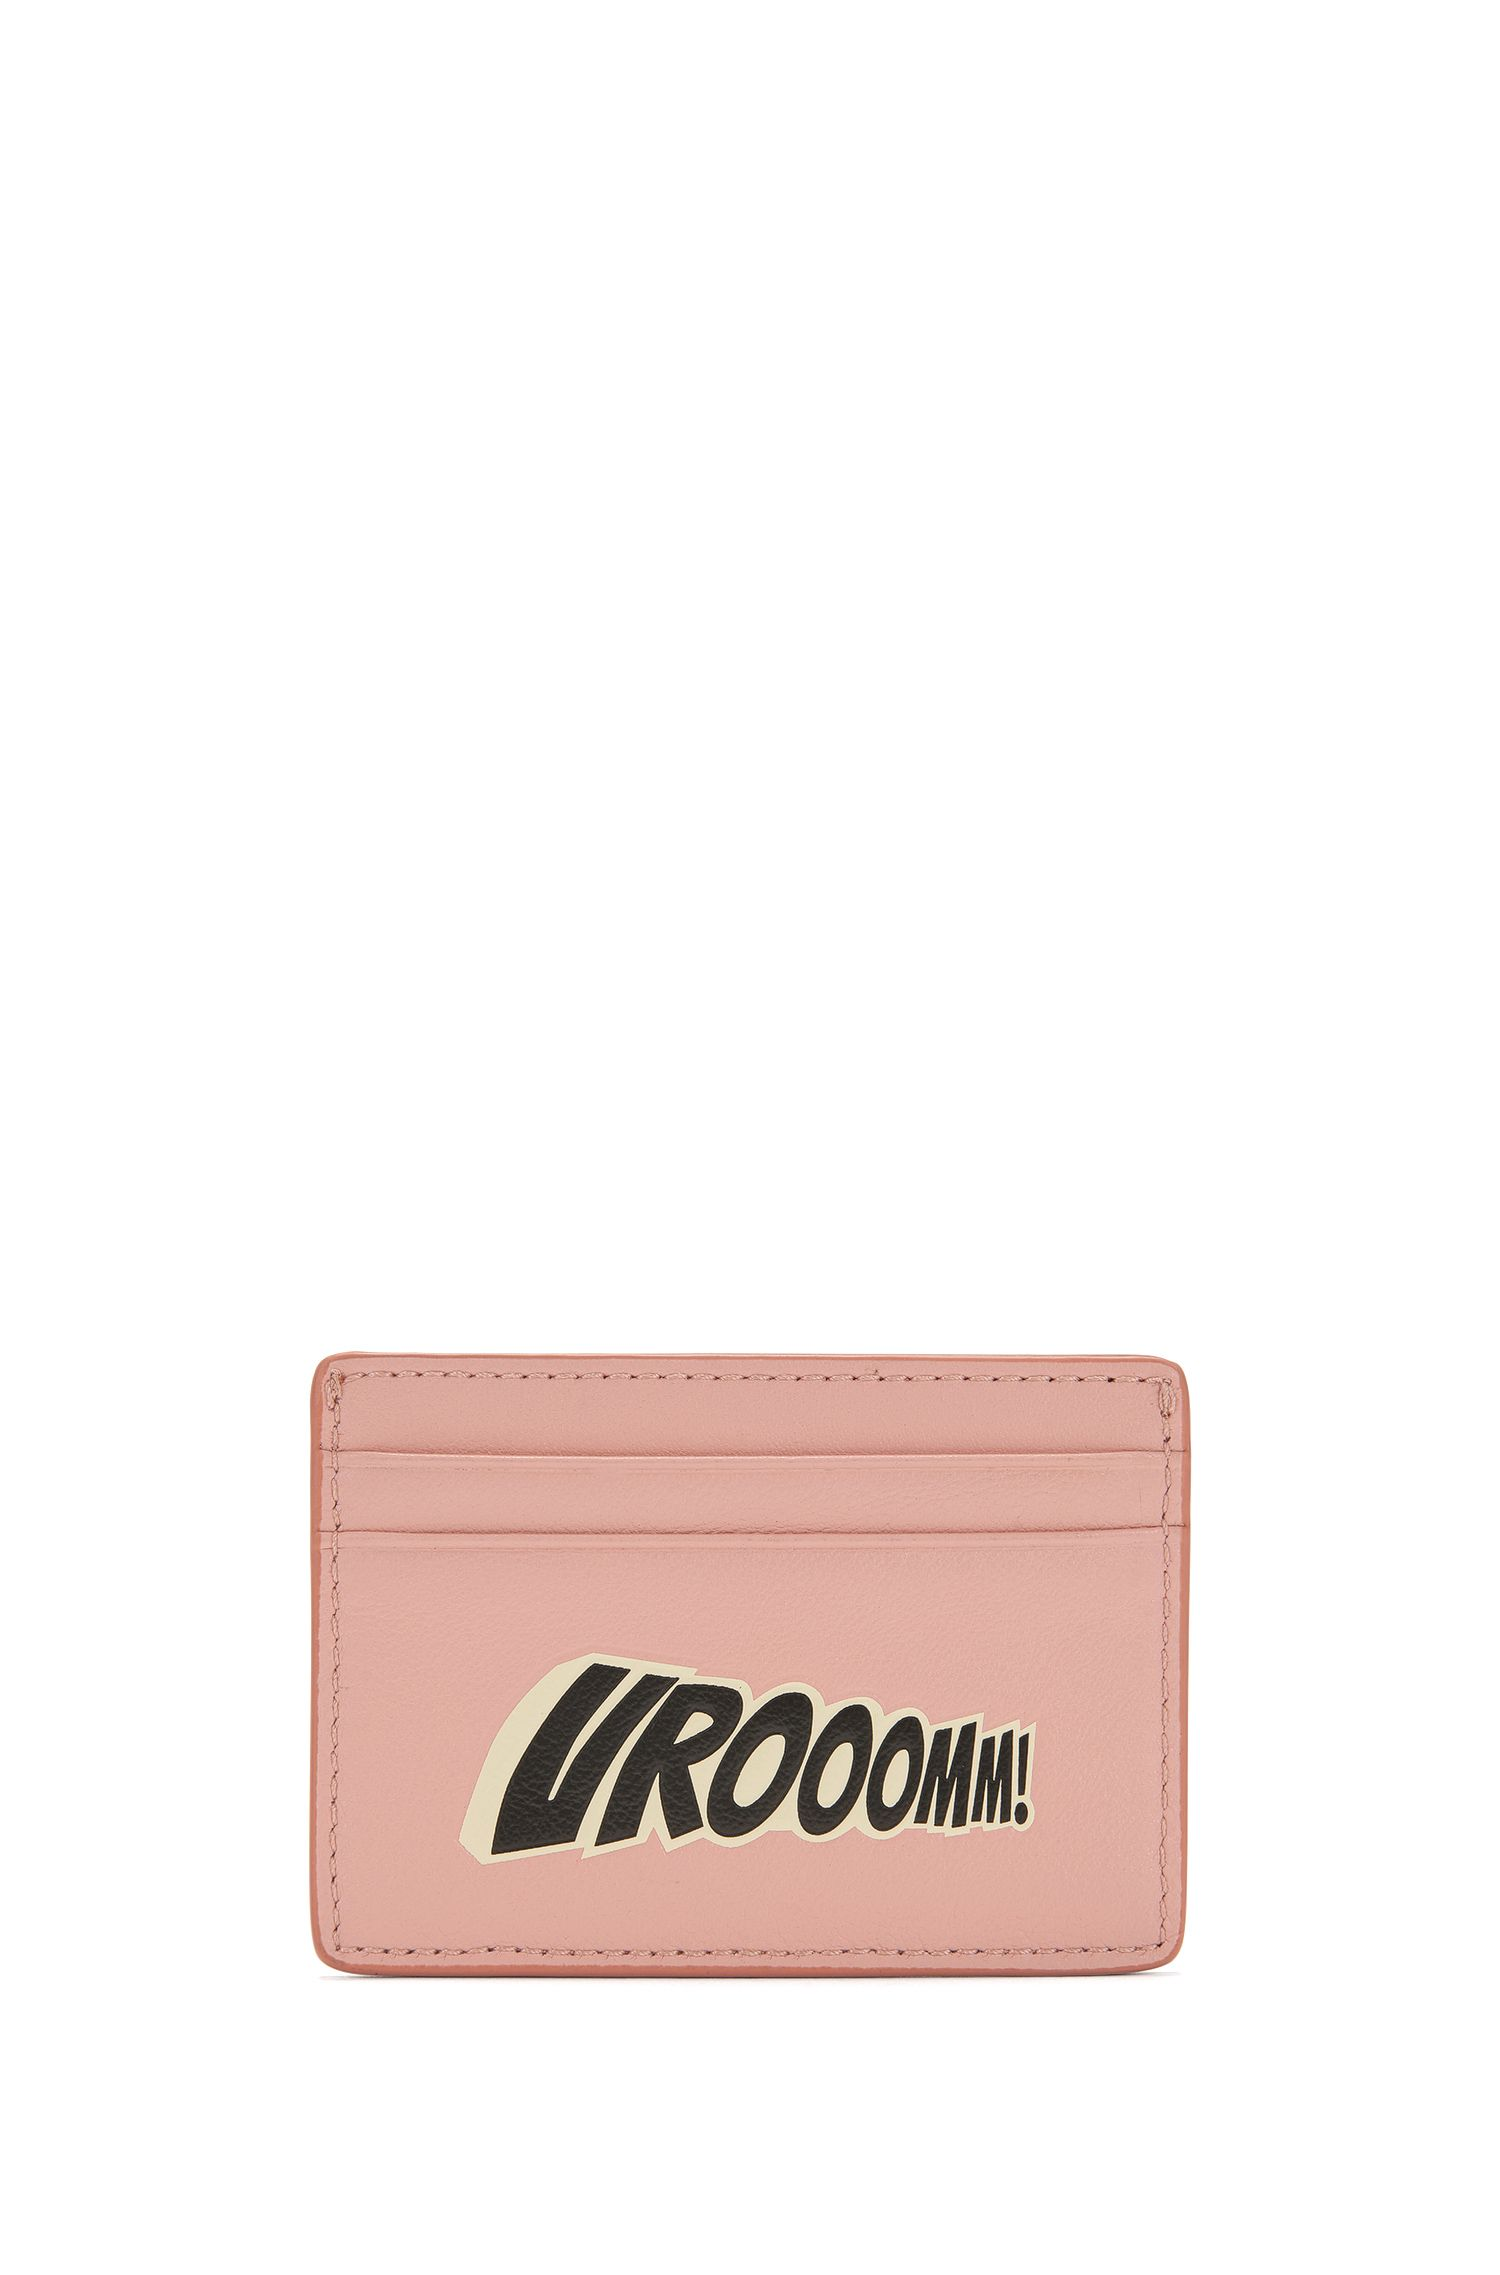 Leather card holder with playful slogan